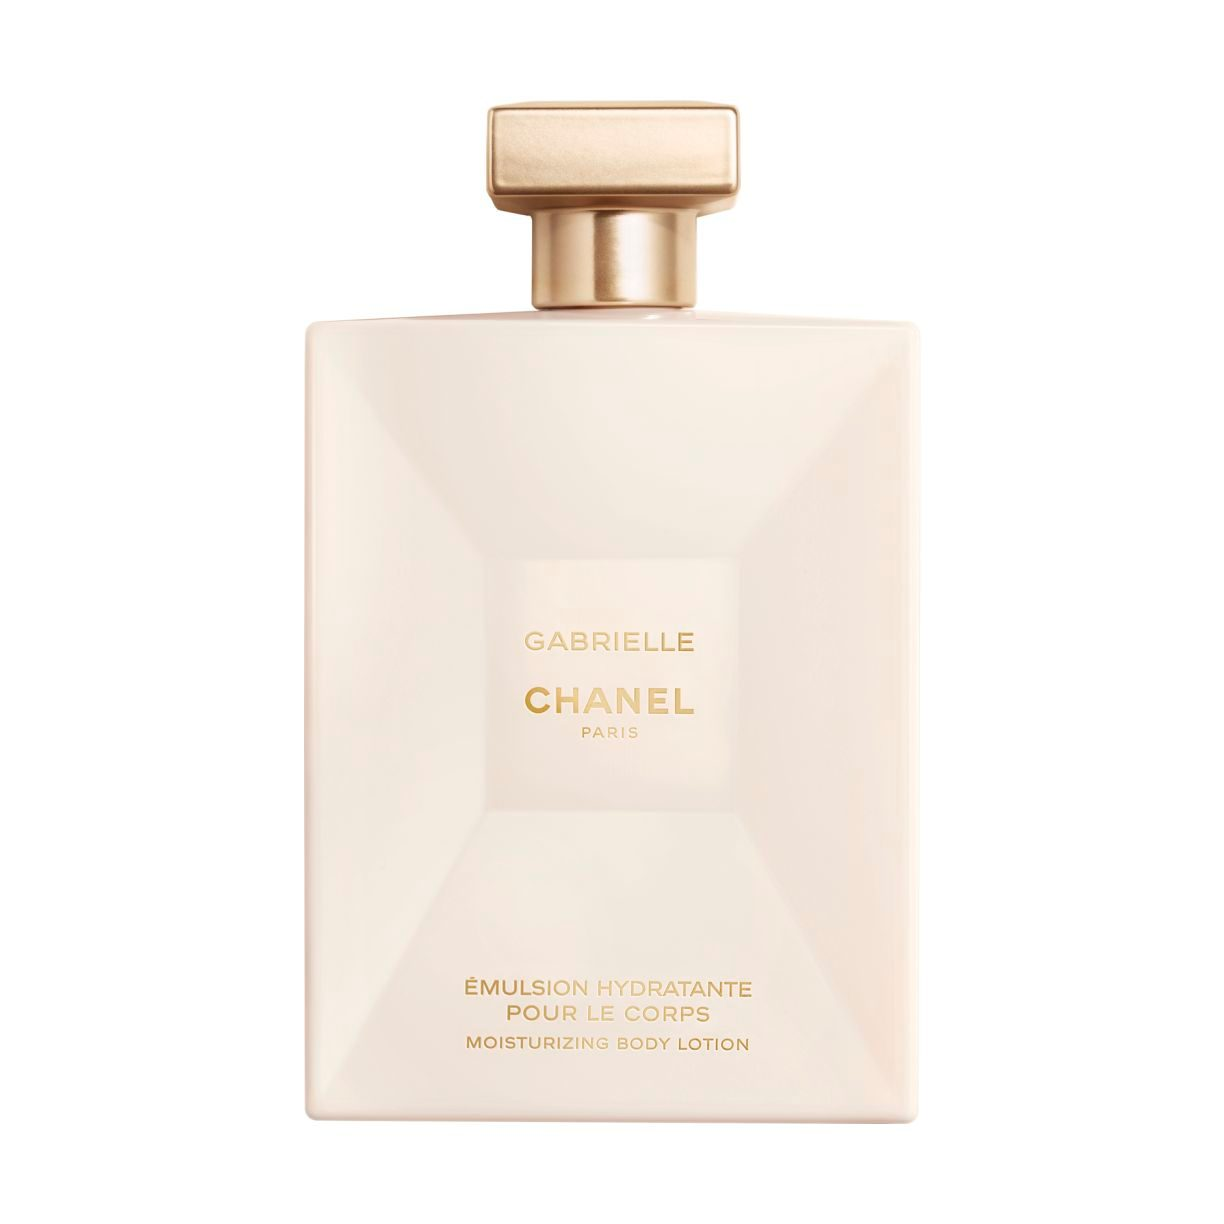 GABRIELLE CHANEL MOISTURISING BODY LOTION 200ml